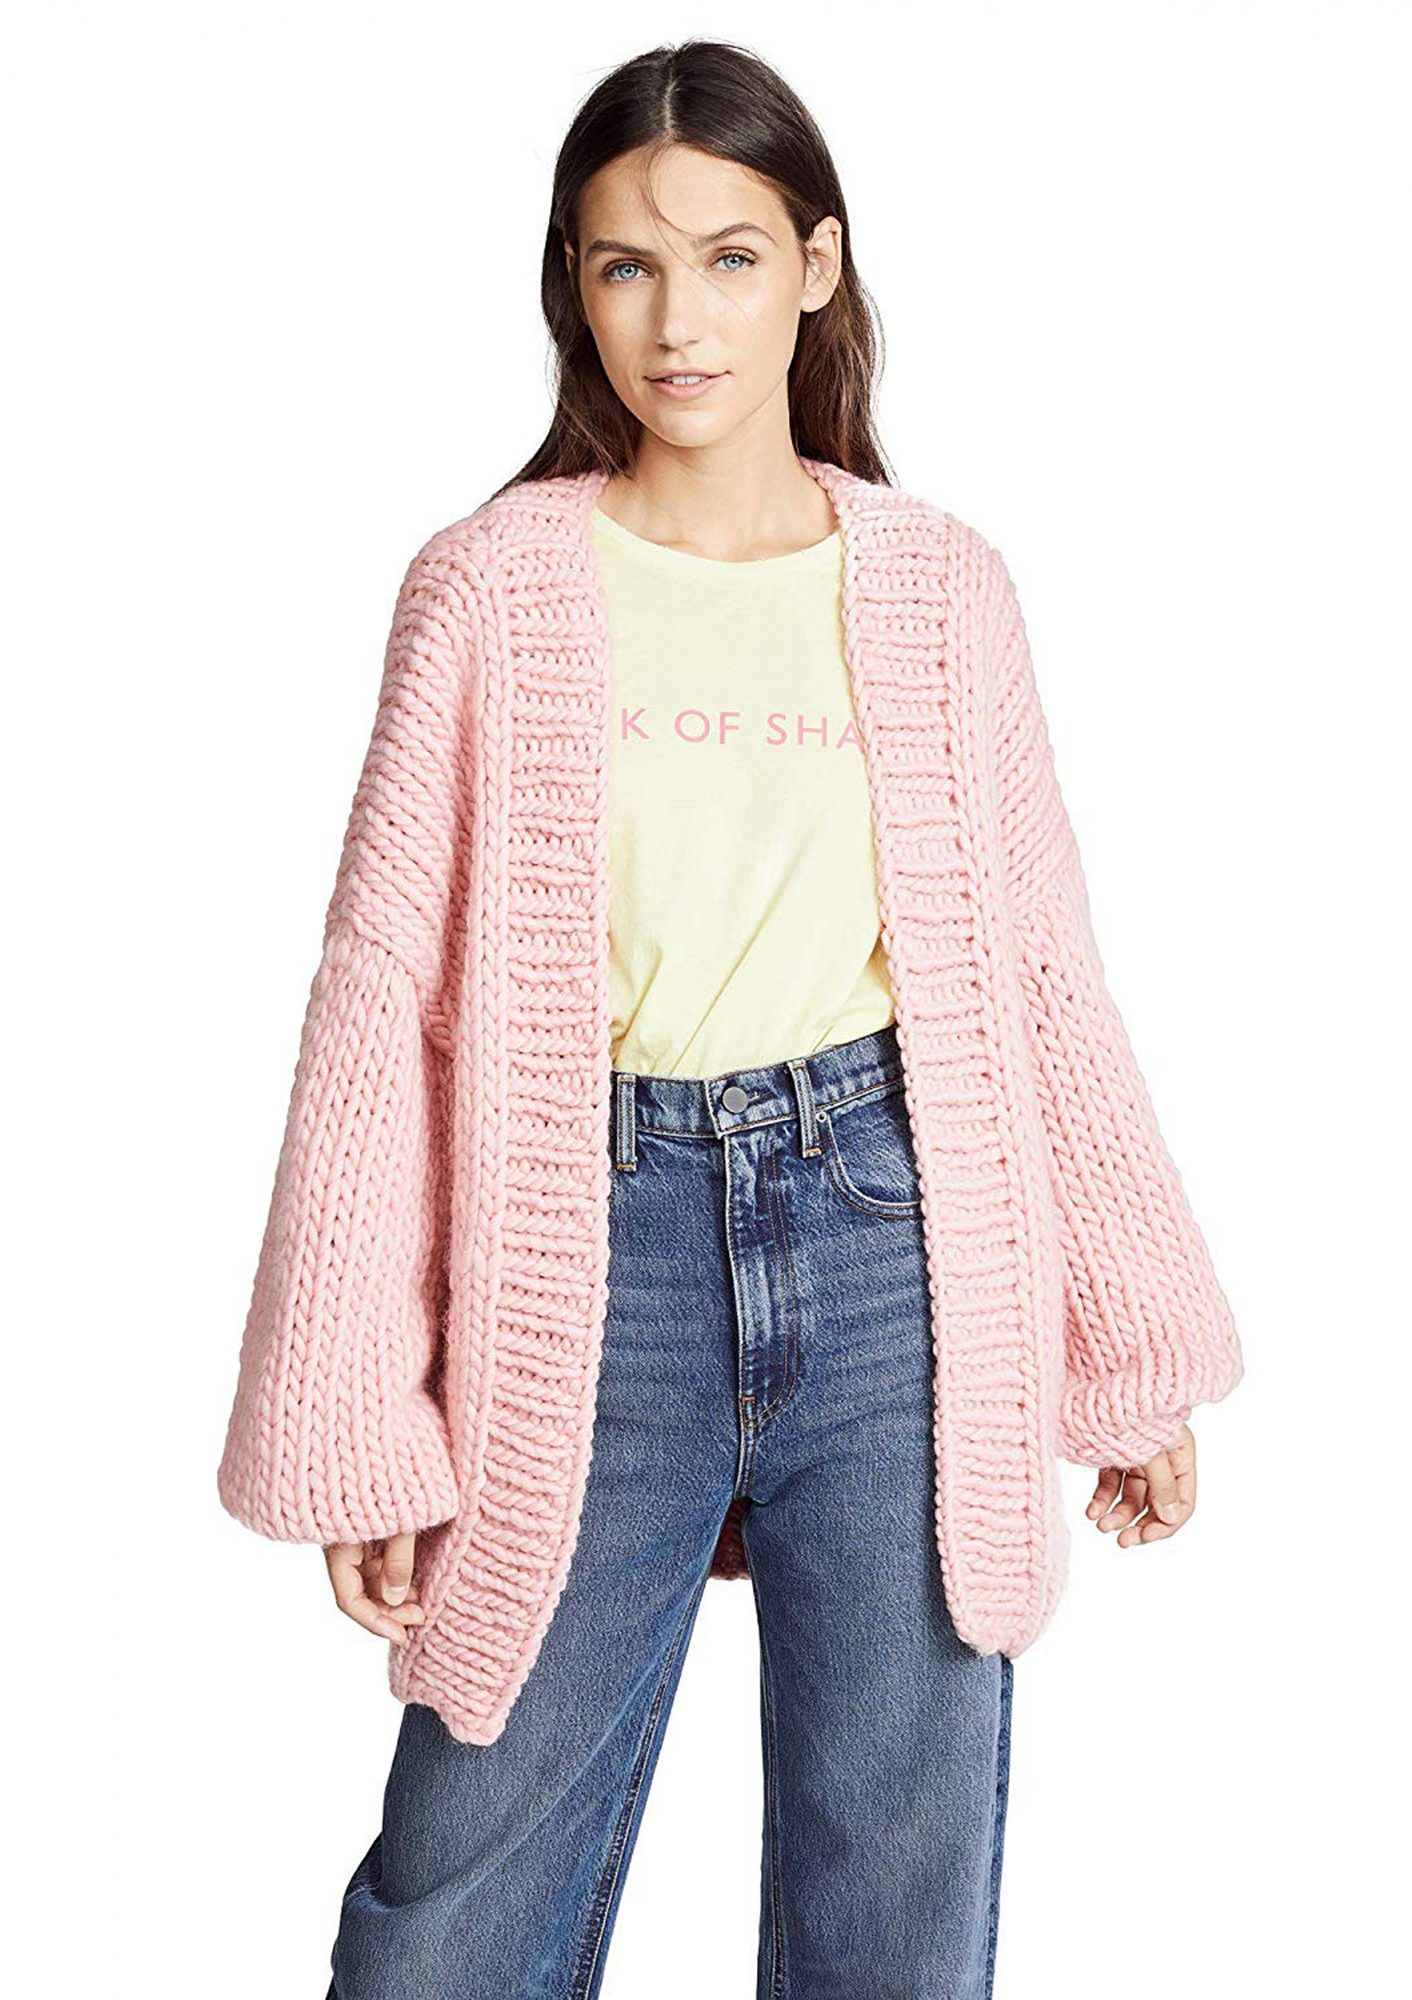 Pink Knit Sweater for Winter